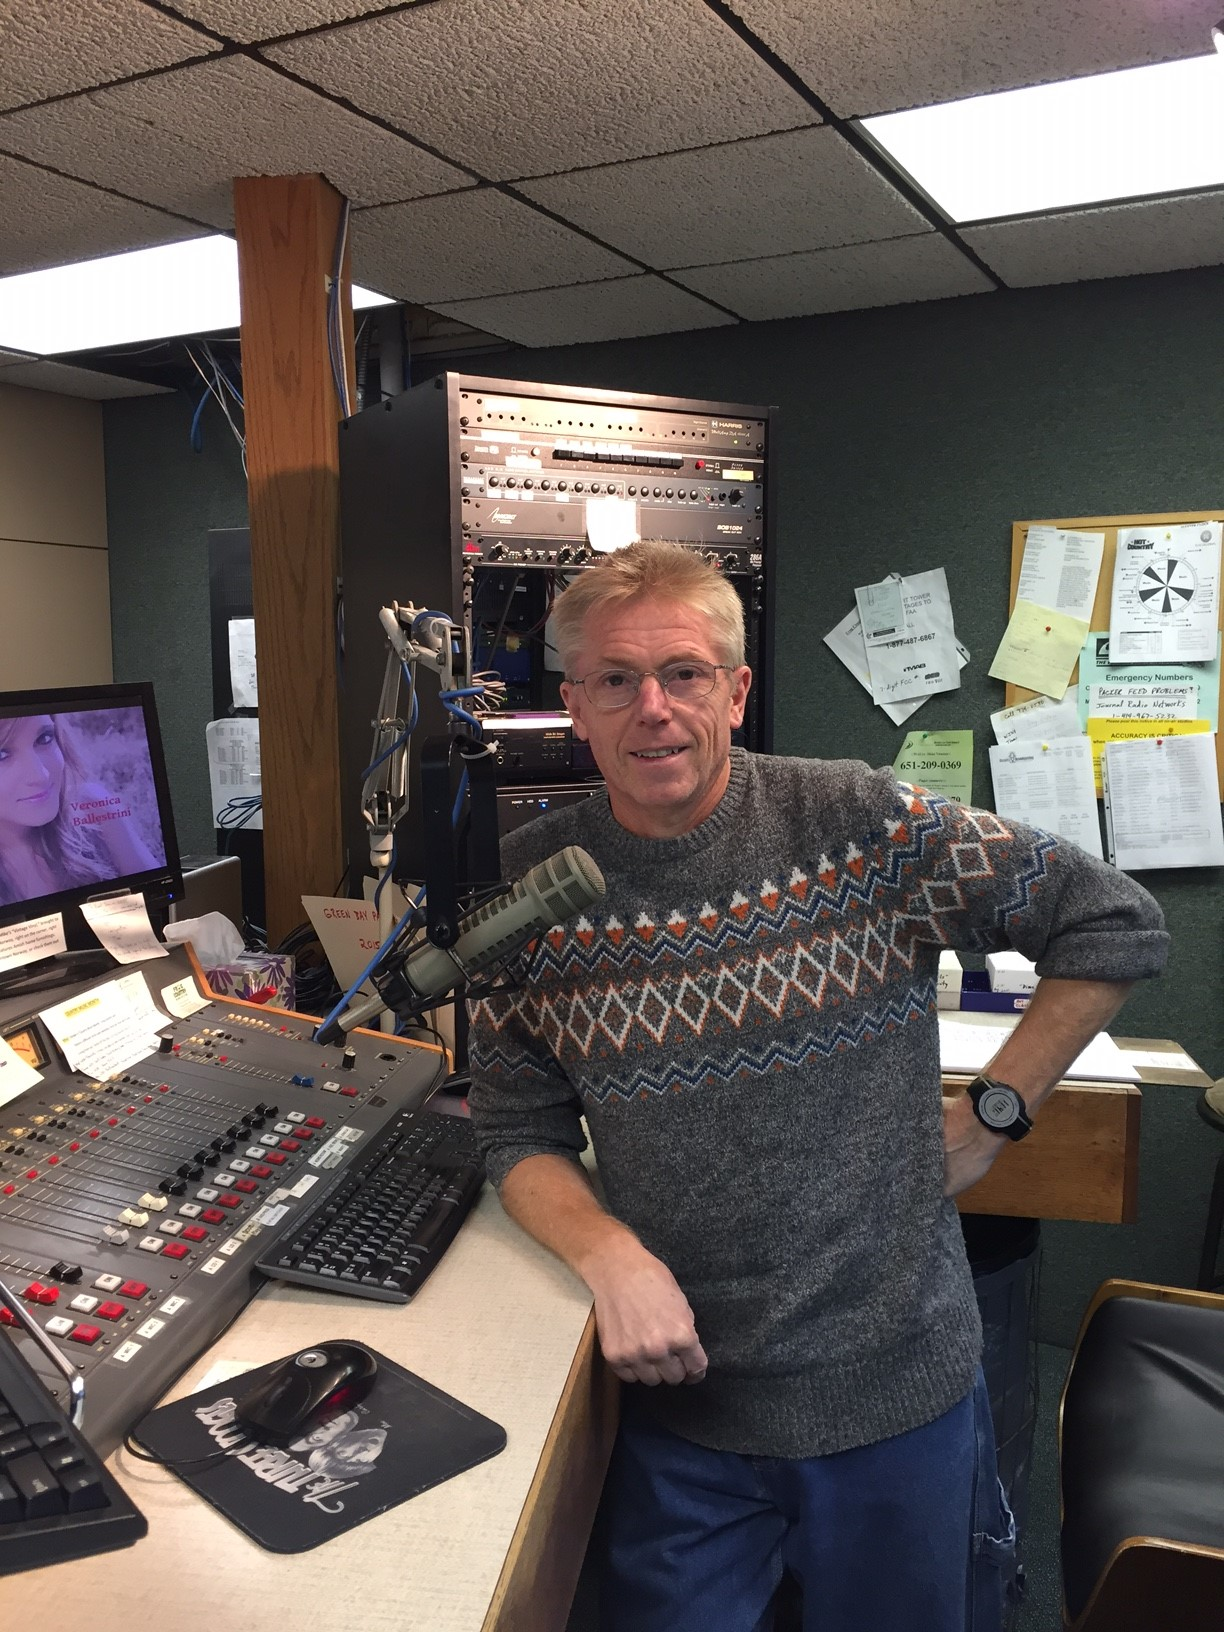 Essential Worker Spotlight – Steve Orchard, Results Broadcasting, Inc.